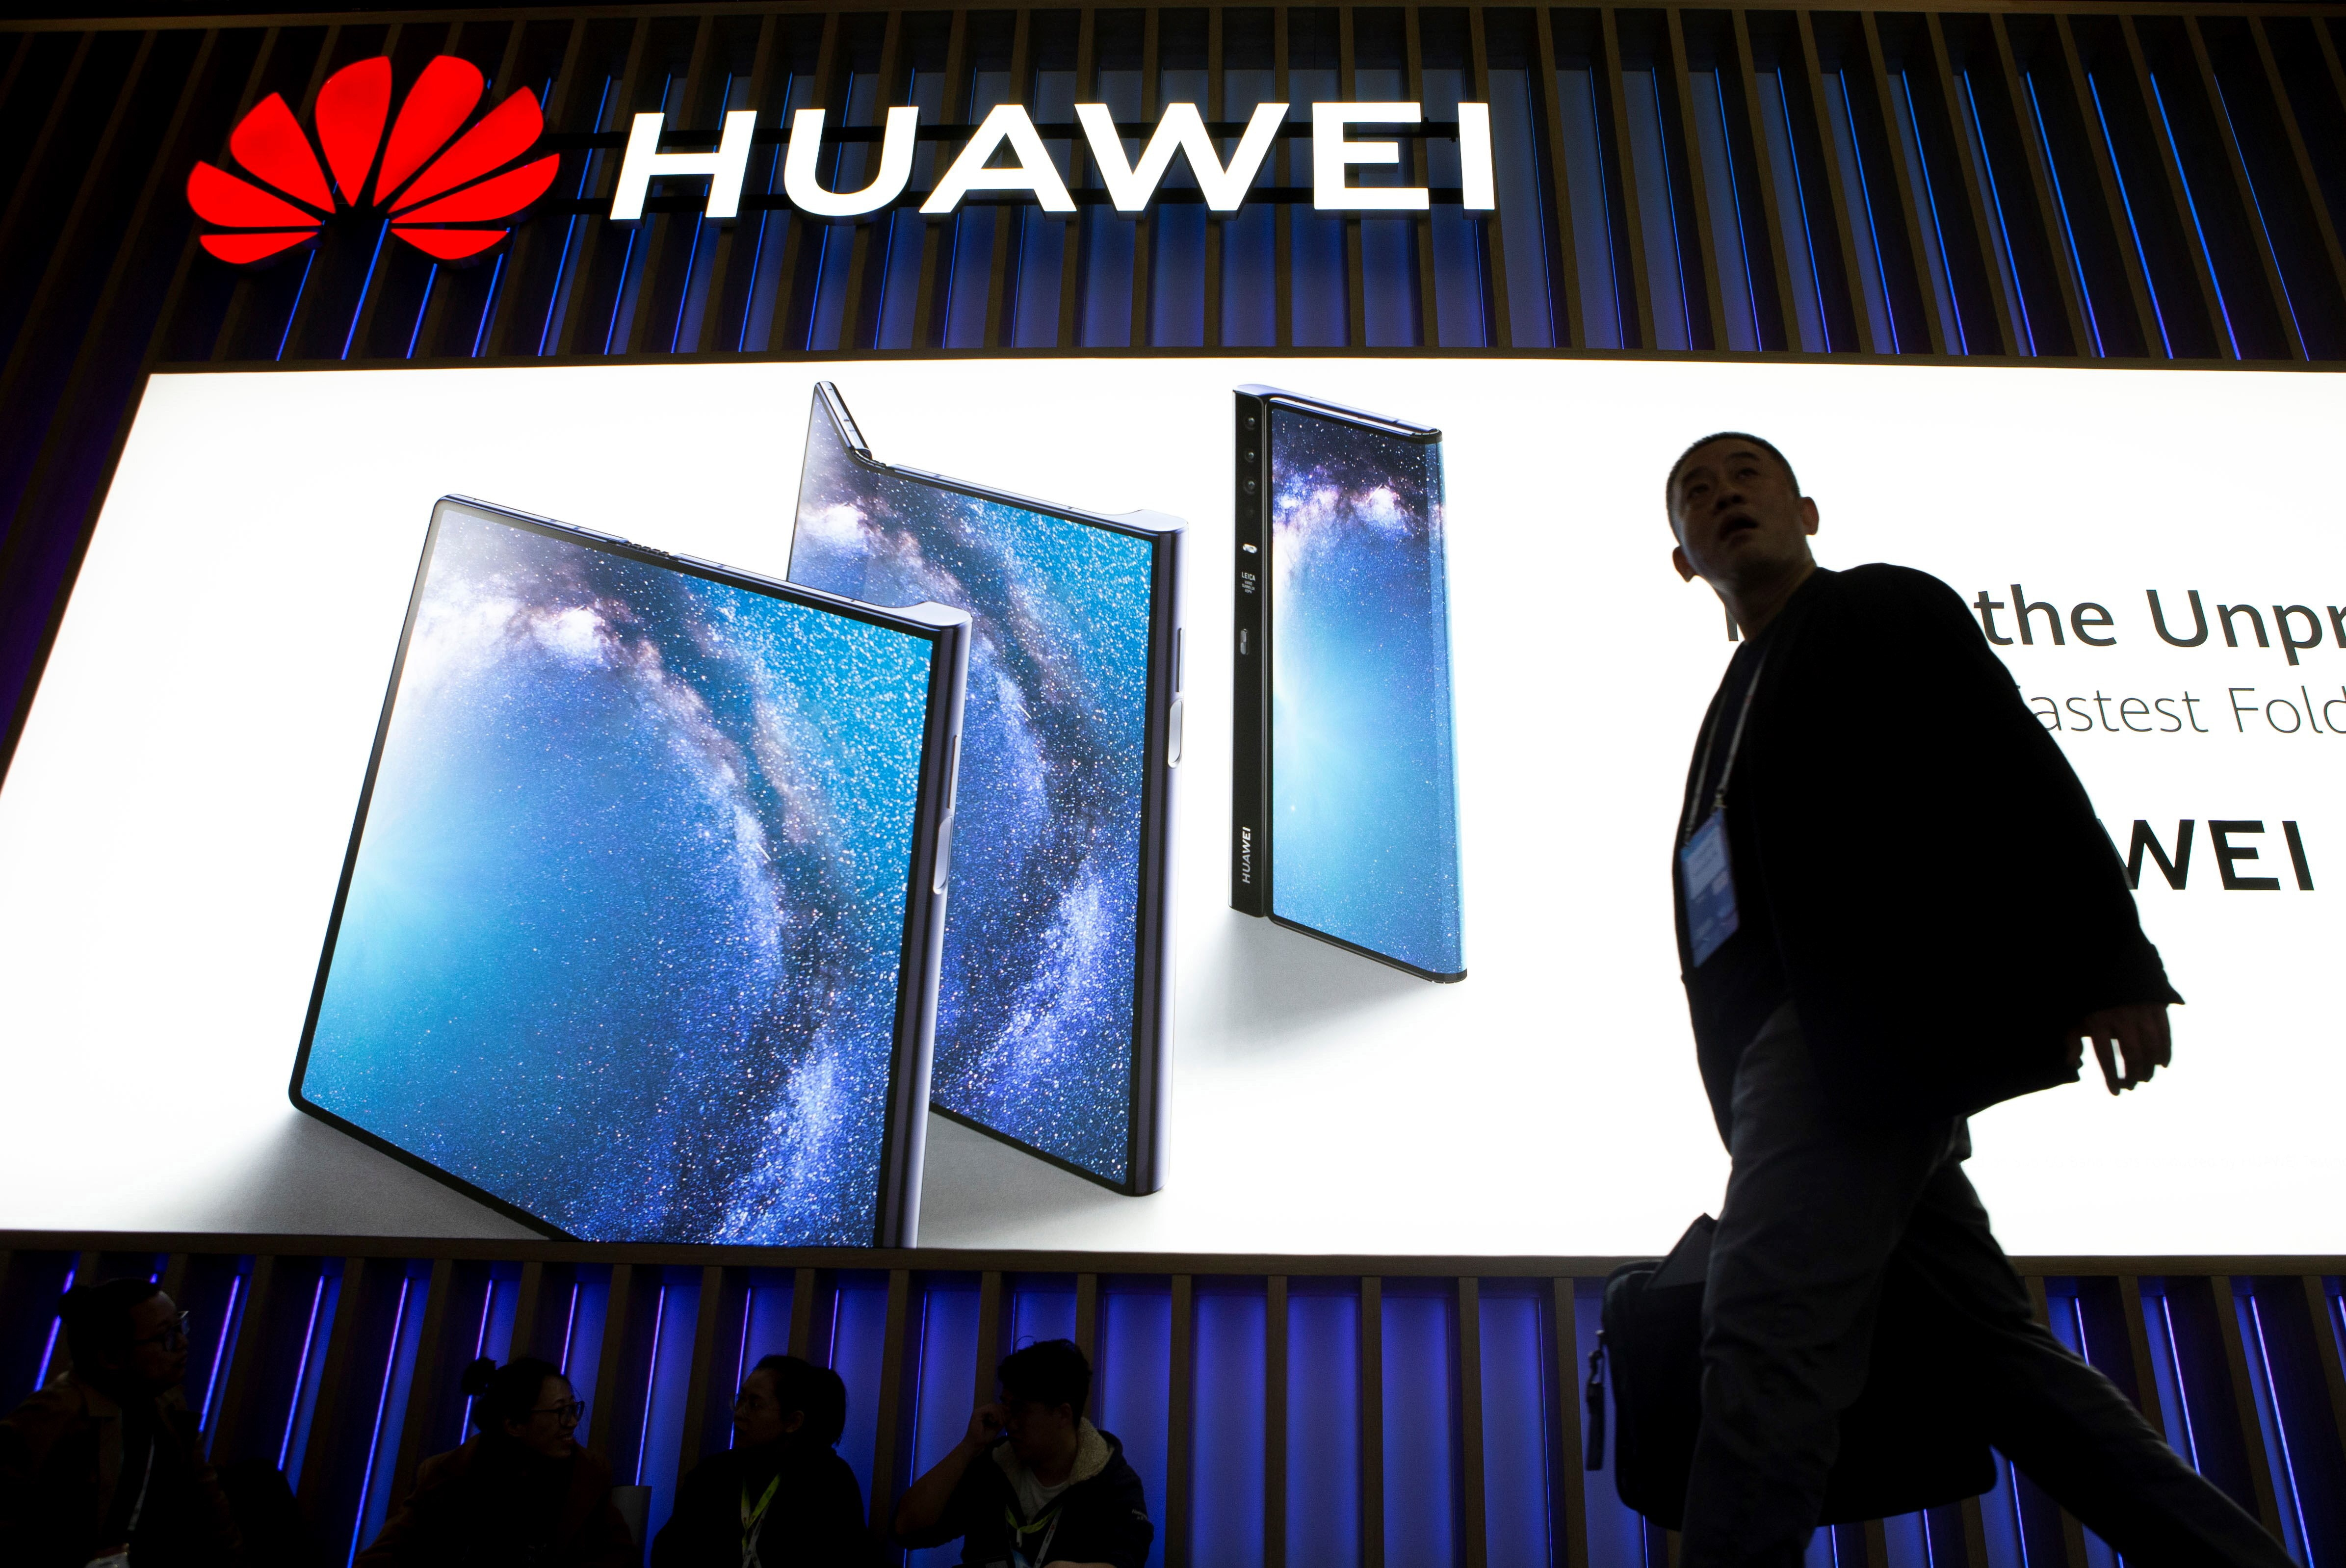 Huawei exposes critical weaknesses. We need the infrastructure to engage with China